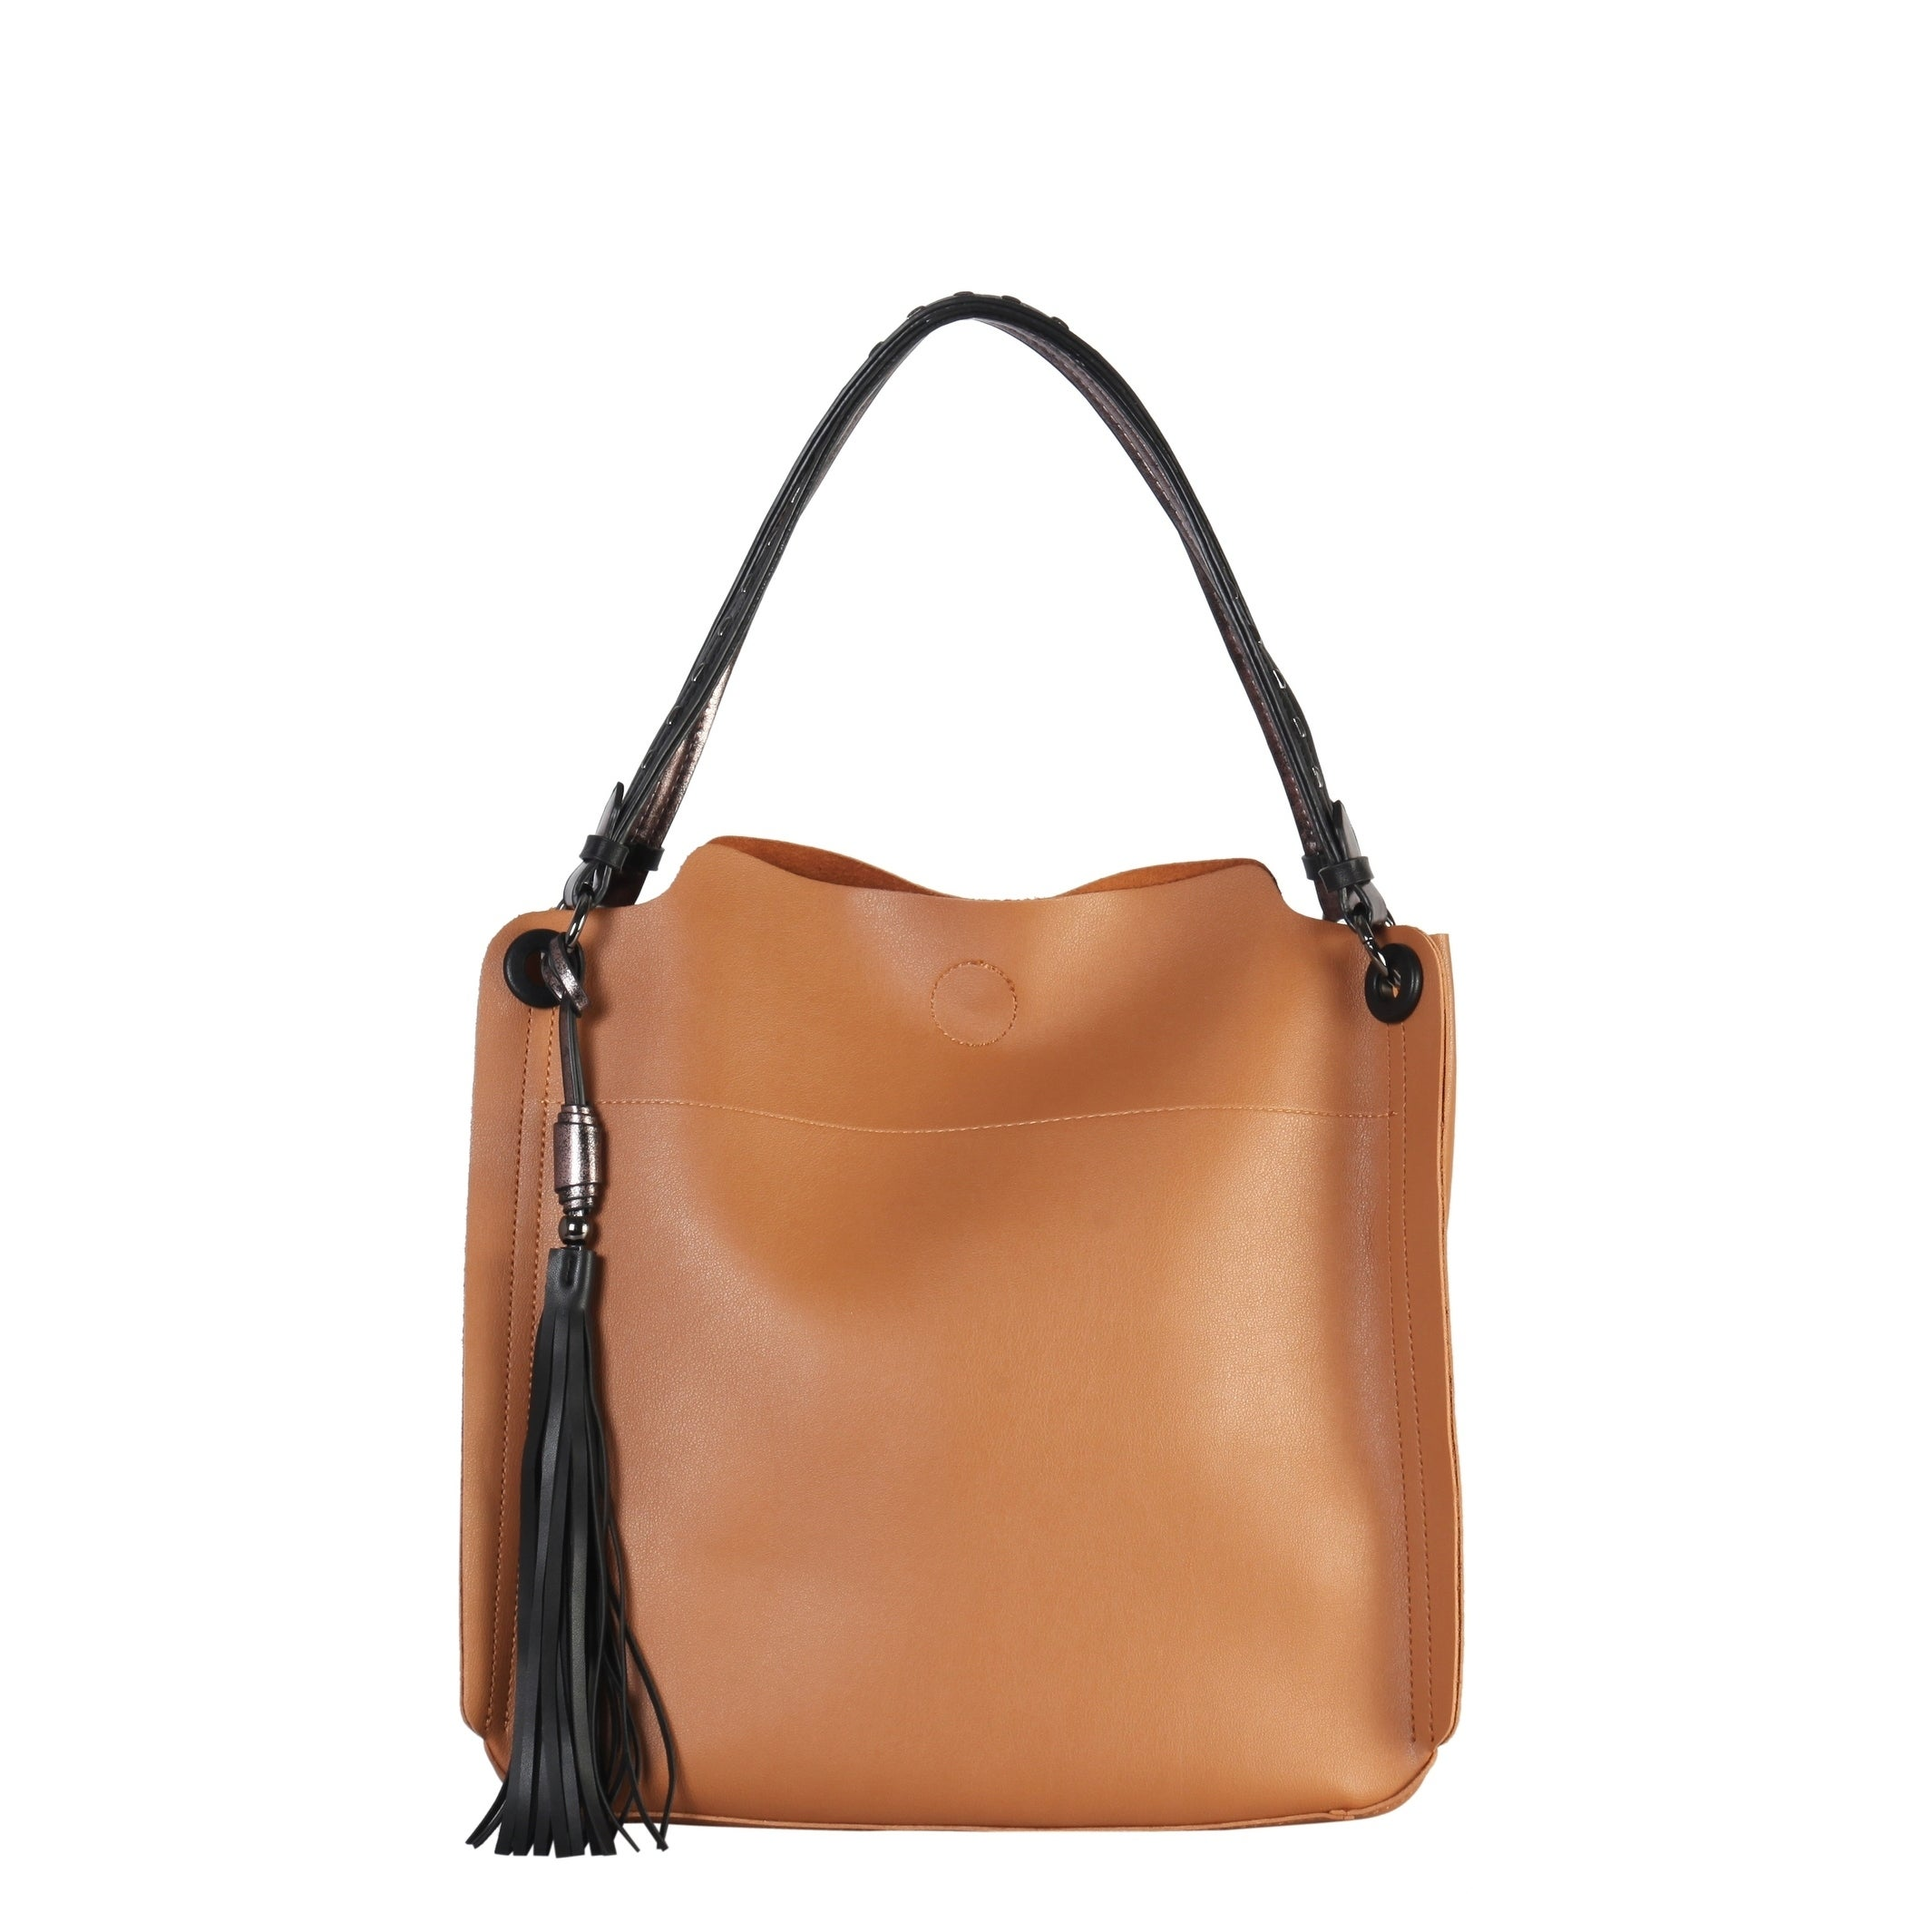 Shop Diophy Large Hobo with Tassels Decoration Womens Purse - L - Free  Shipping Today - Overstock.com - 20351230 419201ffba